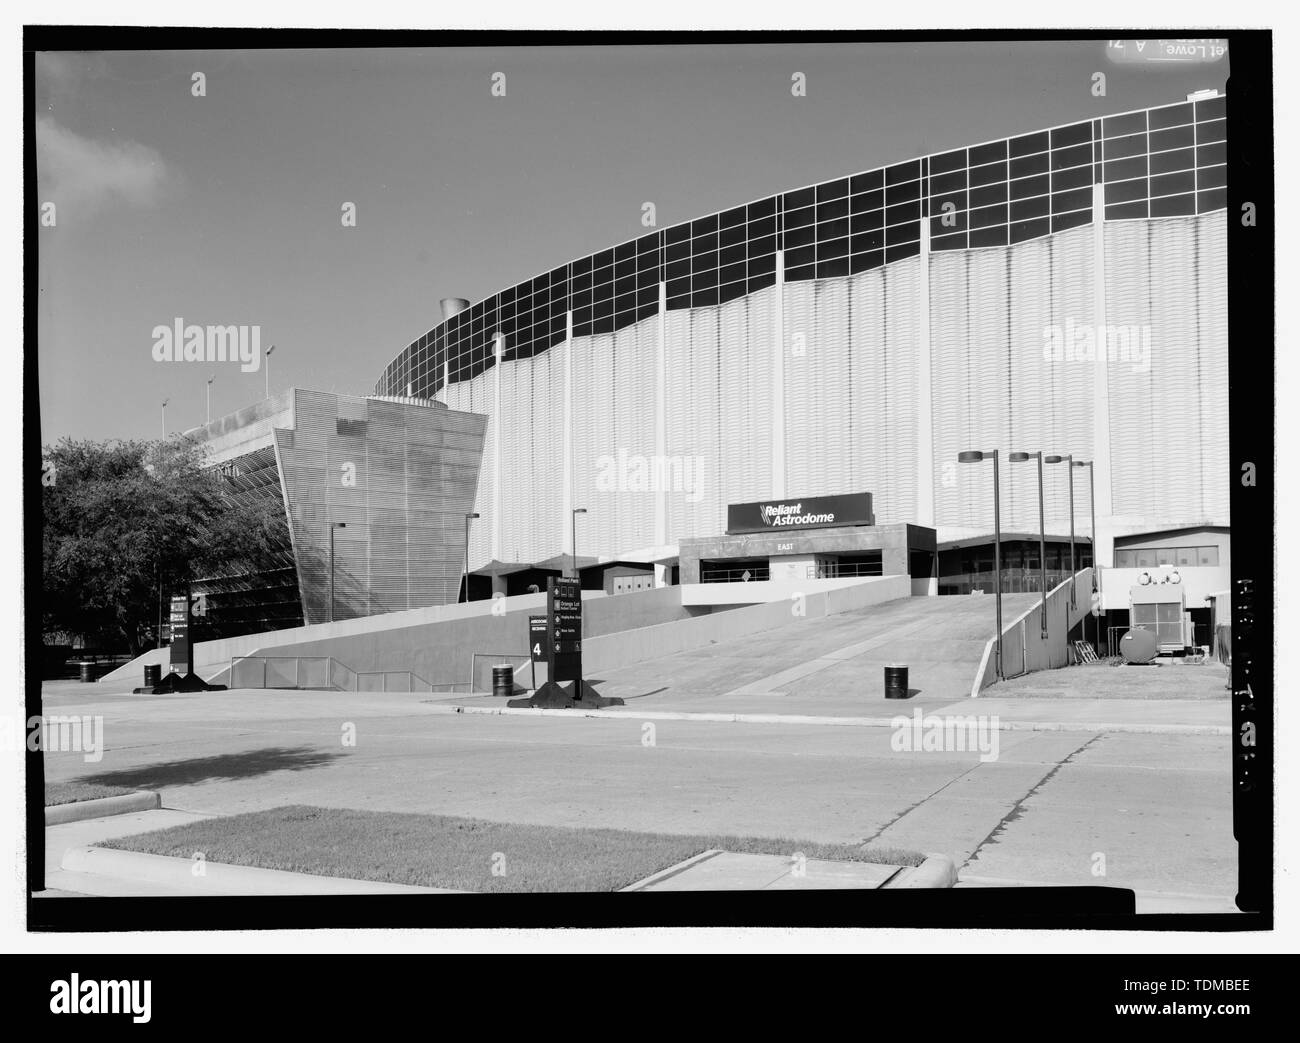 PERSPECTIVE OF EAST ELEVATION AND LARGE CHILLER, LOOKING SOUTHWEST. - Houston Astrodome, 8400 Kirby Drive, Houston, Harris County, TX; Lloyd and Morgan; Wilson, Morris, Crain and Anderson; H A Lott, Inc; Eyster, Herbert H; Sam P Wallace Company; Fish Electric; The Prescon Corporation; Walter P Moore and Associates, Inc; Praeger-Kavanagh-Waterbury; Turney, J G; Lockwood, Andrews and Newnam Inc; Dale S Cooper and Associates; Kiewitt, G R; Bass, Louis O; Bolt, Beranek and Newman; American Bridge Division; US Steel Corporation; The Rackle Company; American Seating Company; Hofheinz, Roy M; Smith,  - Stock Image